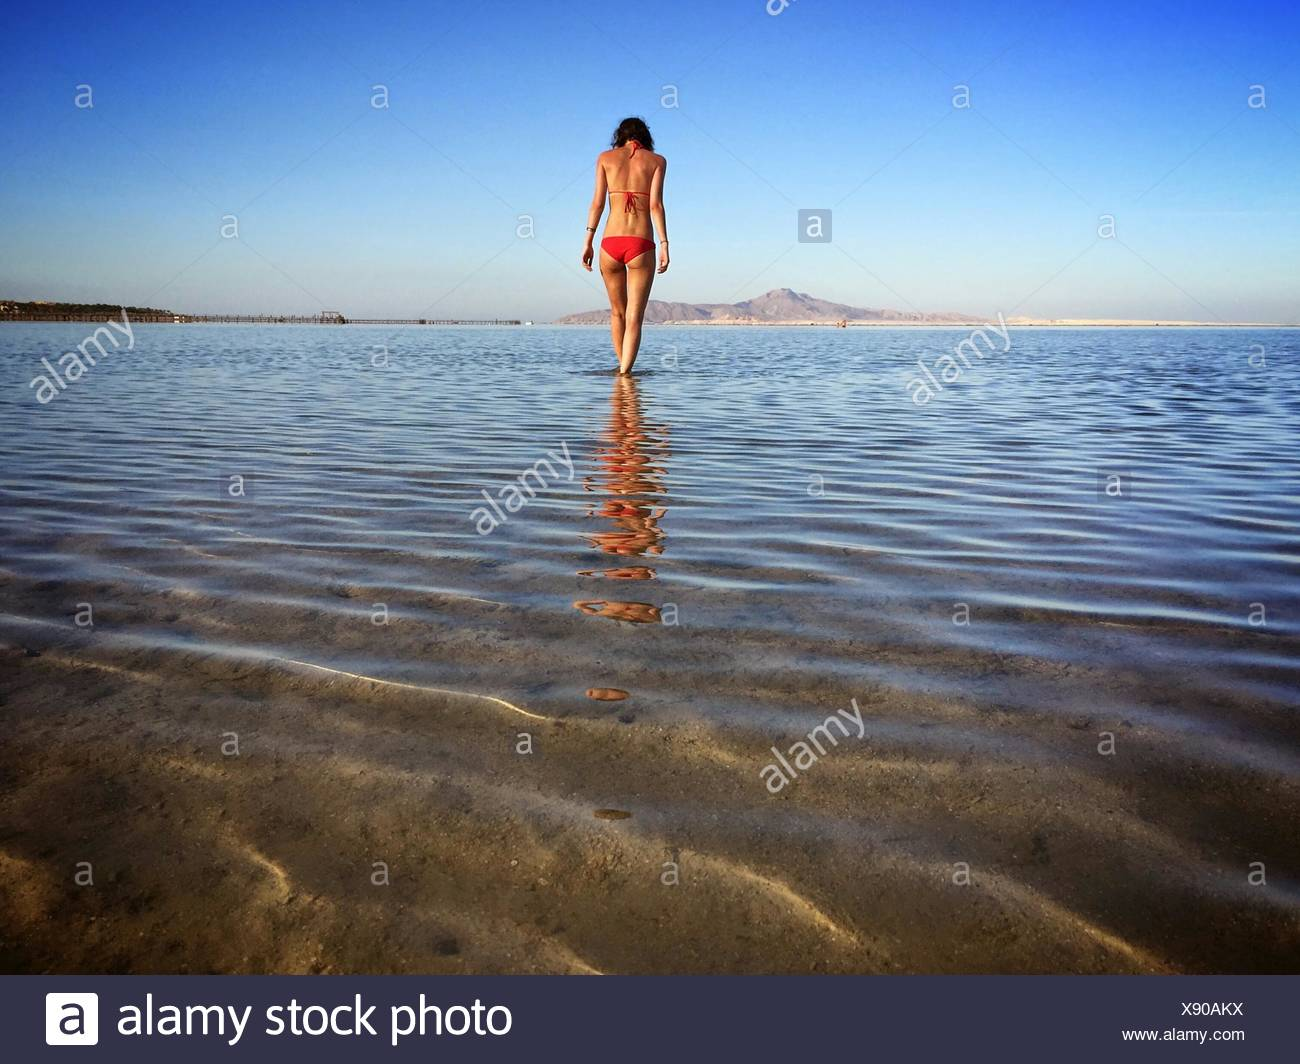 Rear View Of Woman In Swimwear At Beach Against Clear Blue Sky - Stock Image